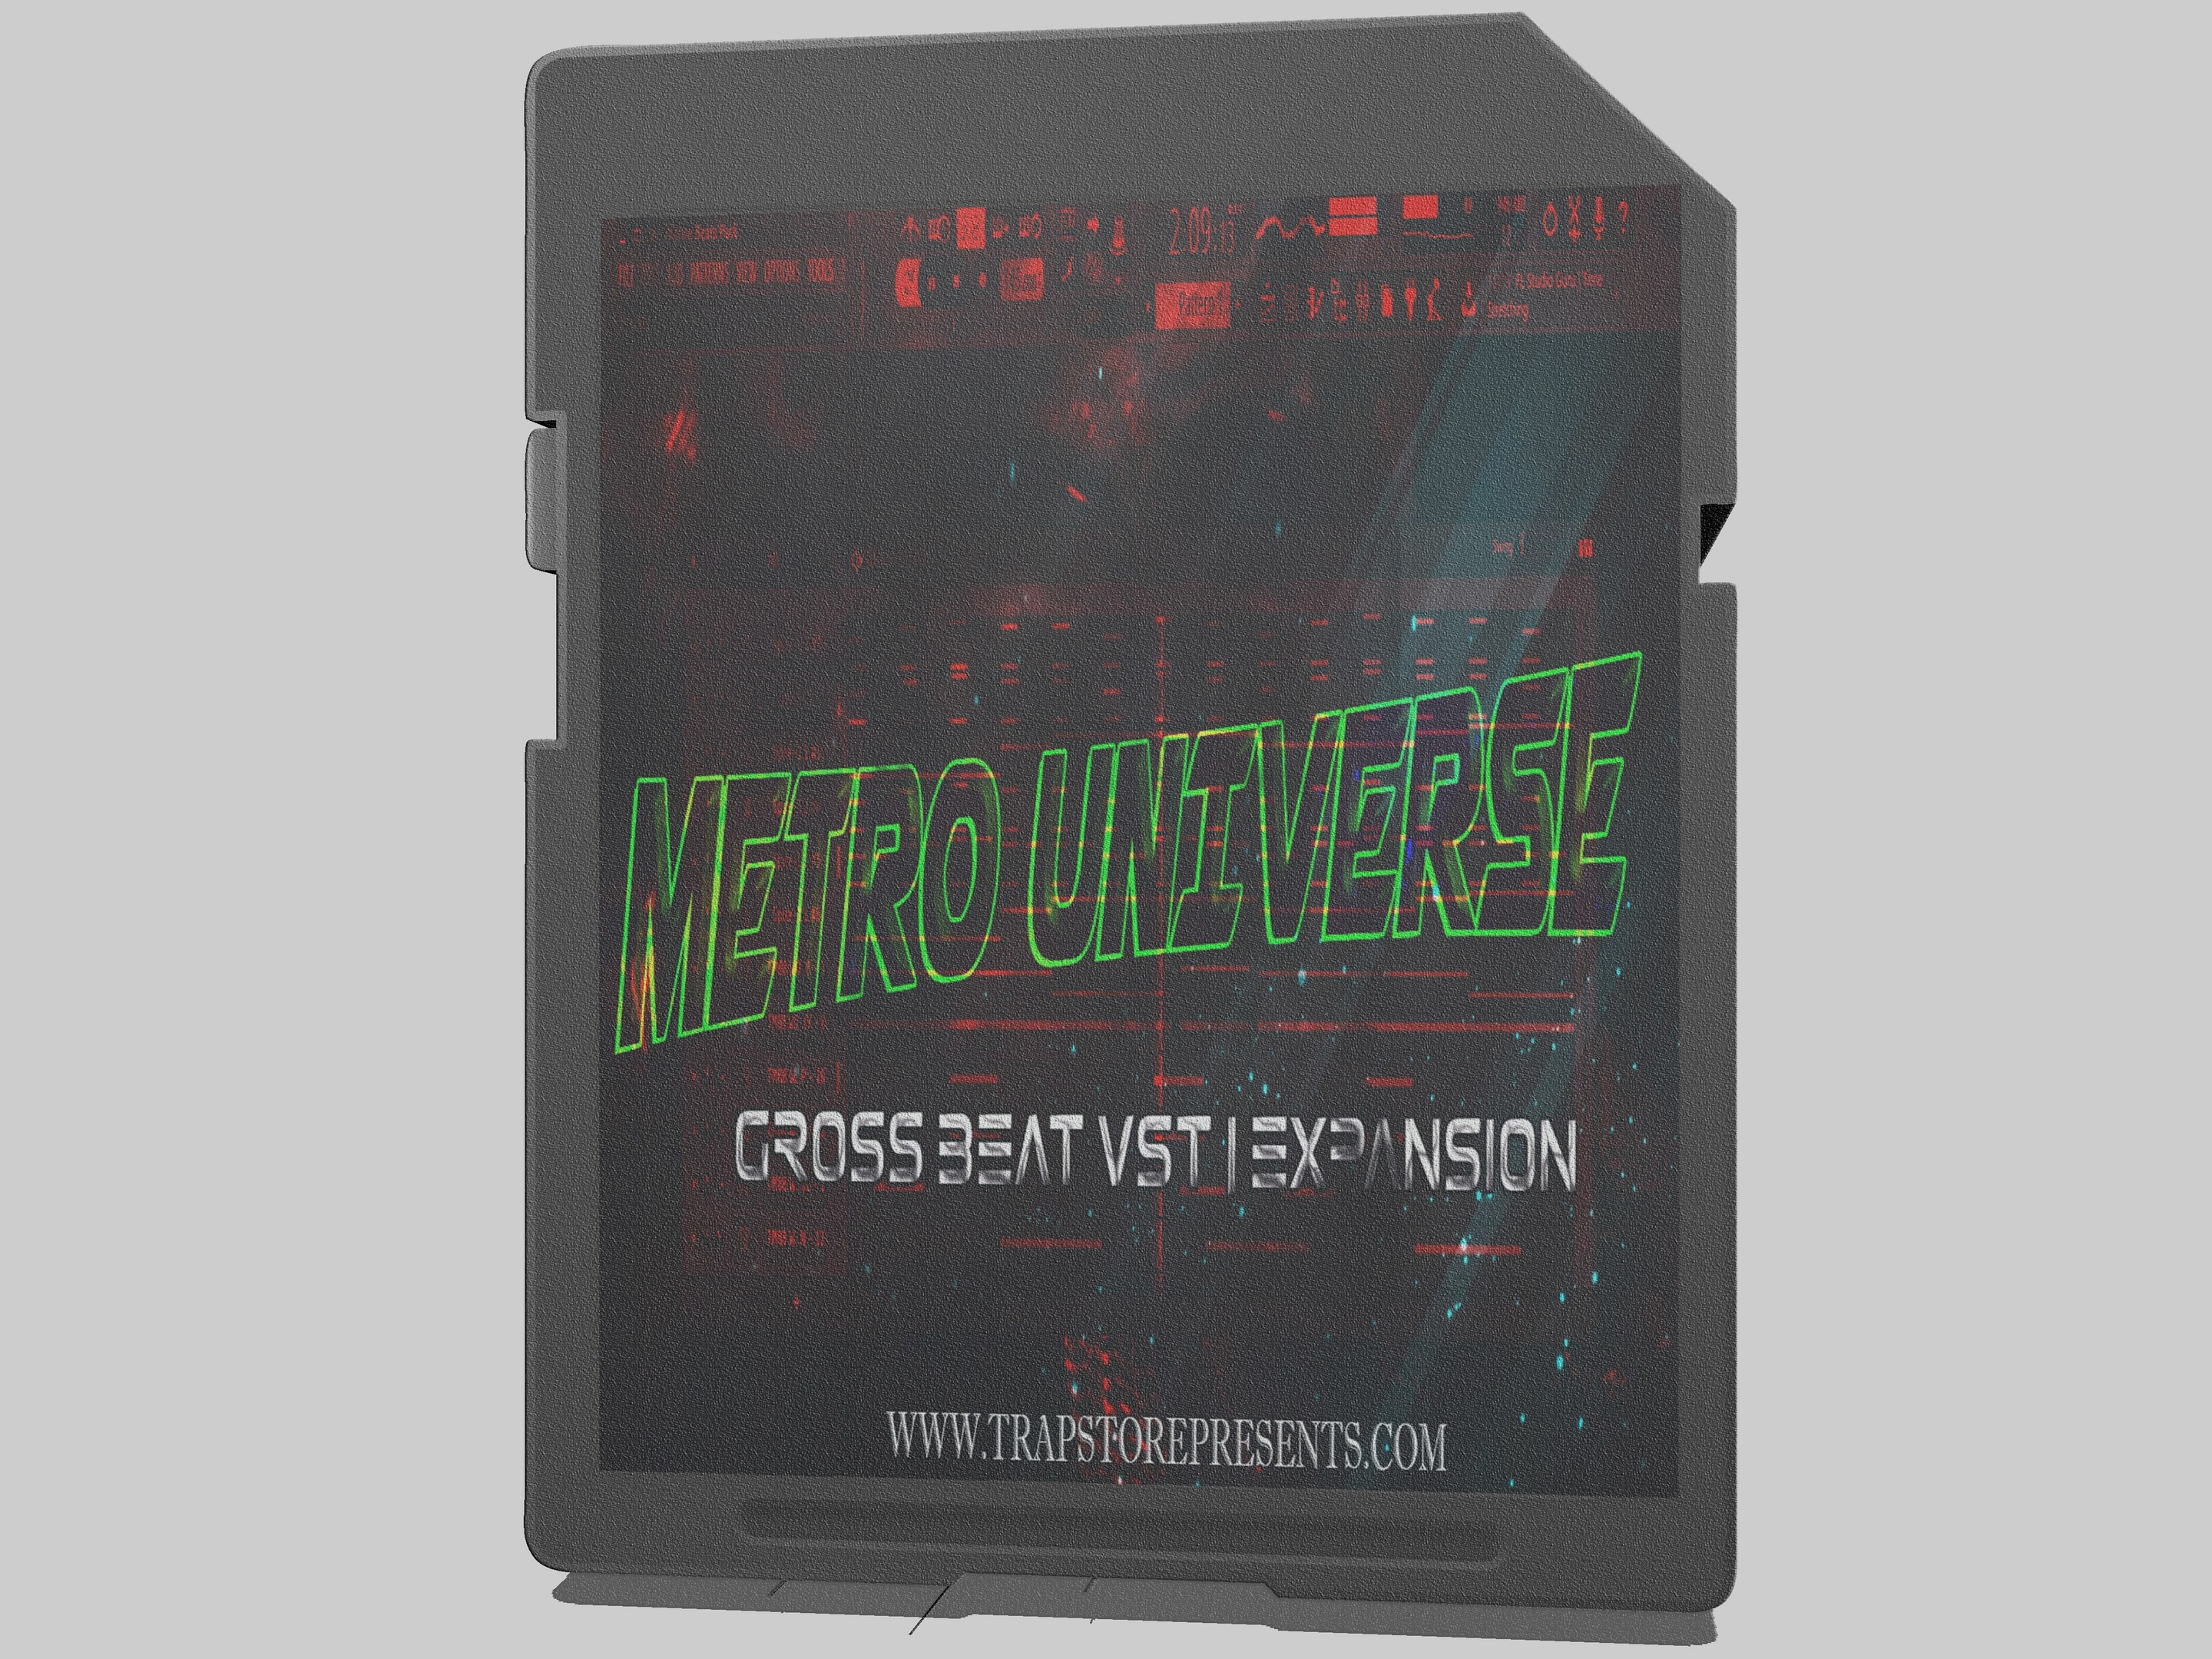 SOUNDBANK EXP - METRO UNIVERSE GROSS BEAT EXPANSION